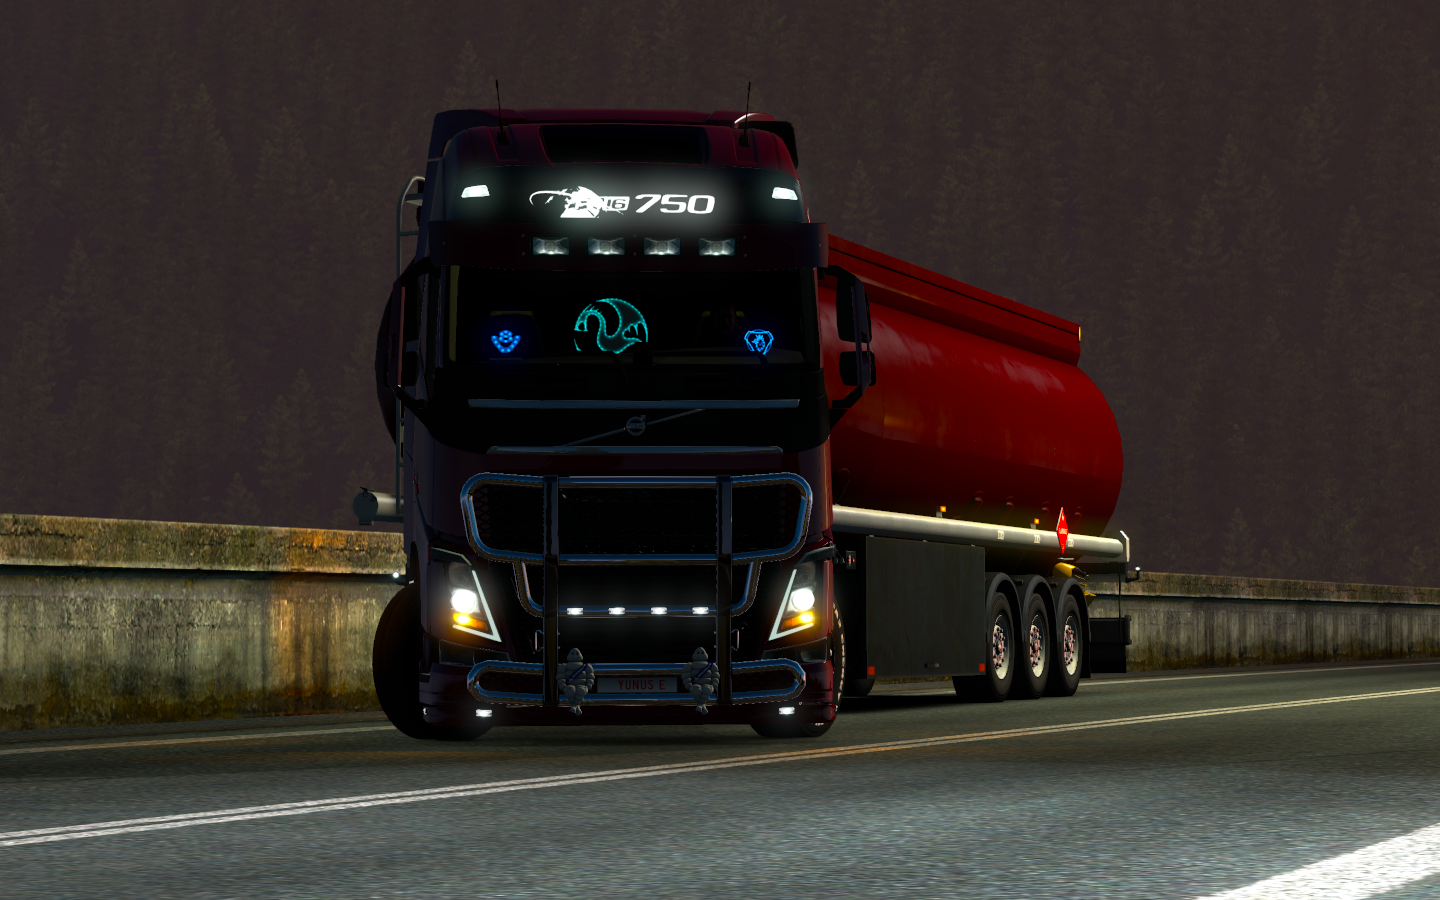 ets2_20181105_214240_00.png